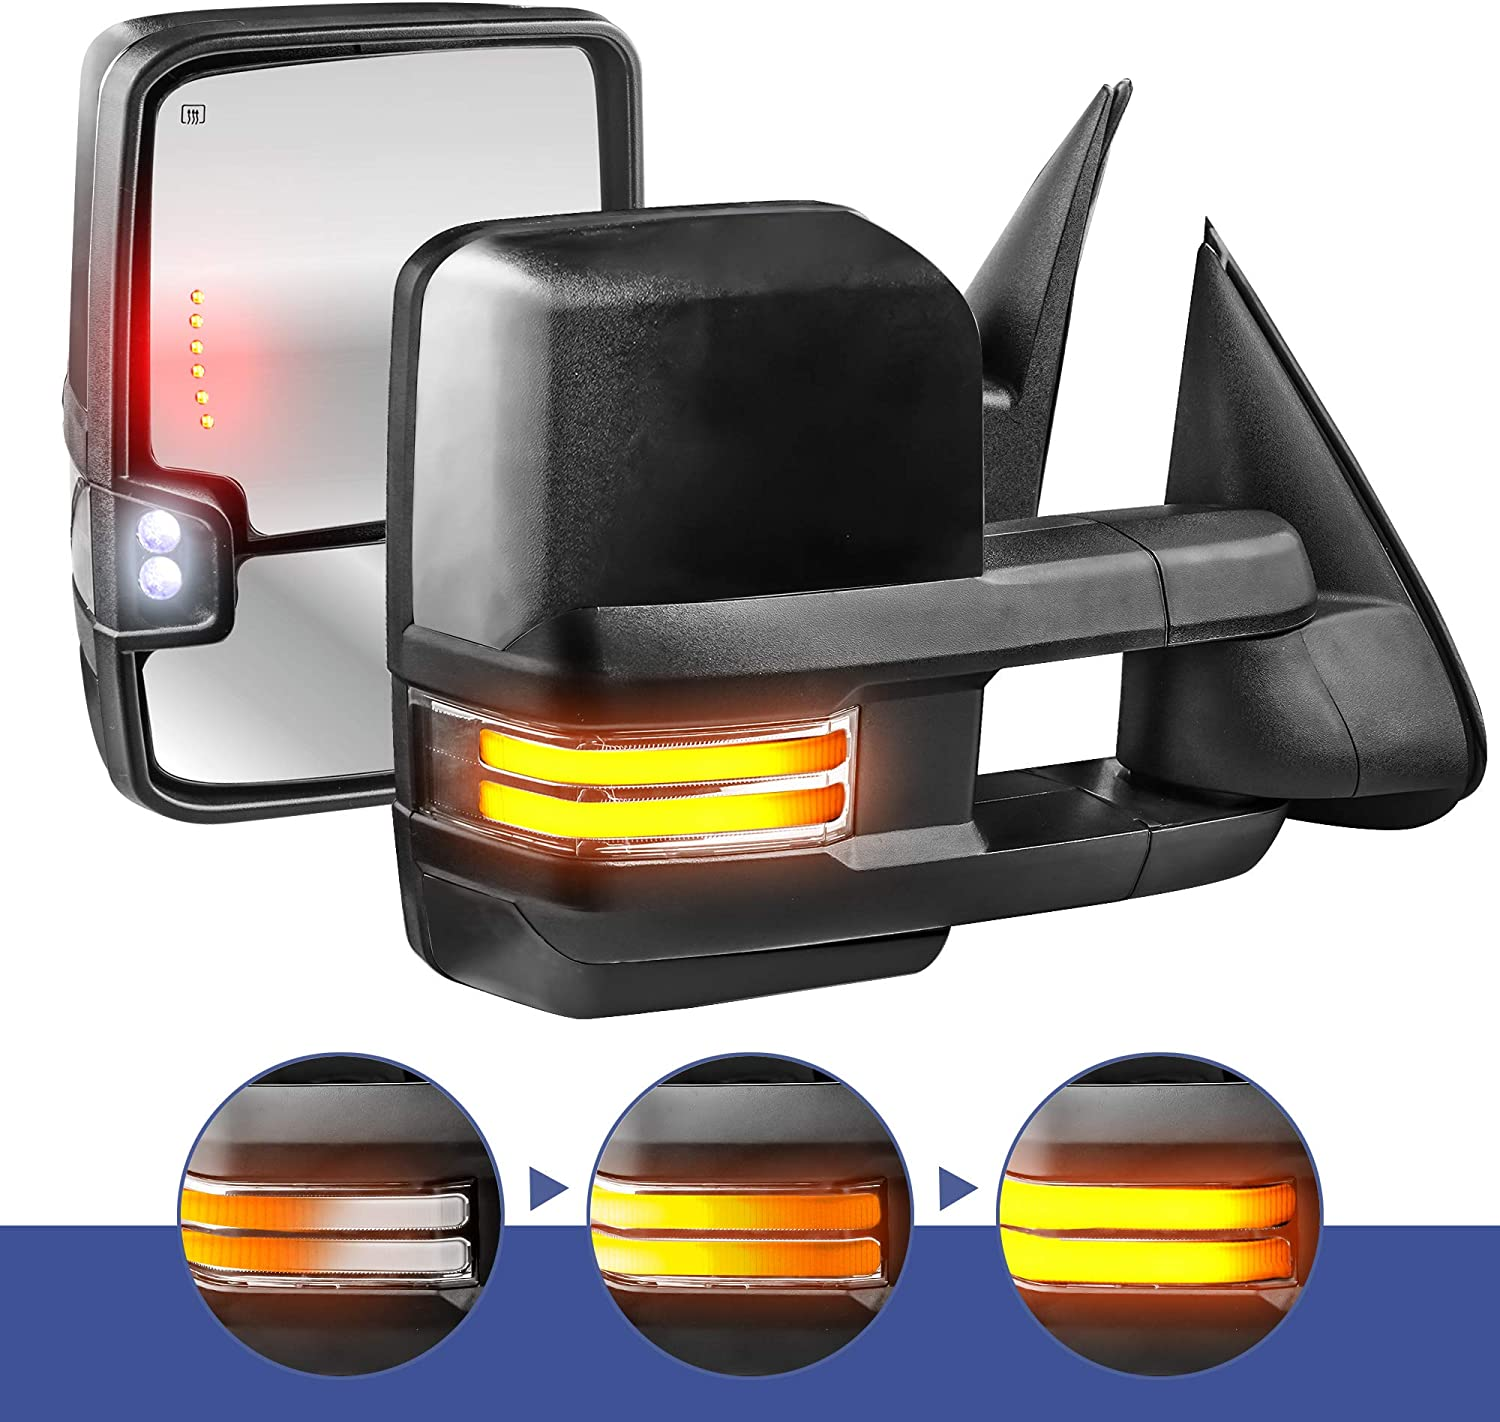 Set of 2 Clearance Lamp Running Light MOSTPLUS New Power Heated Chrome Towing Mirrors for Chevy Silverado Suburban Tahoe GMC Serria Yukon 1999-2002 w//Sequential Turn light